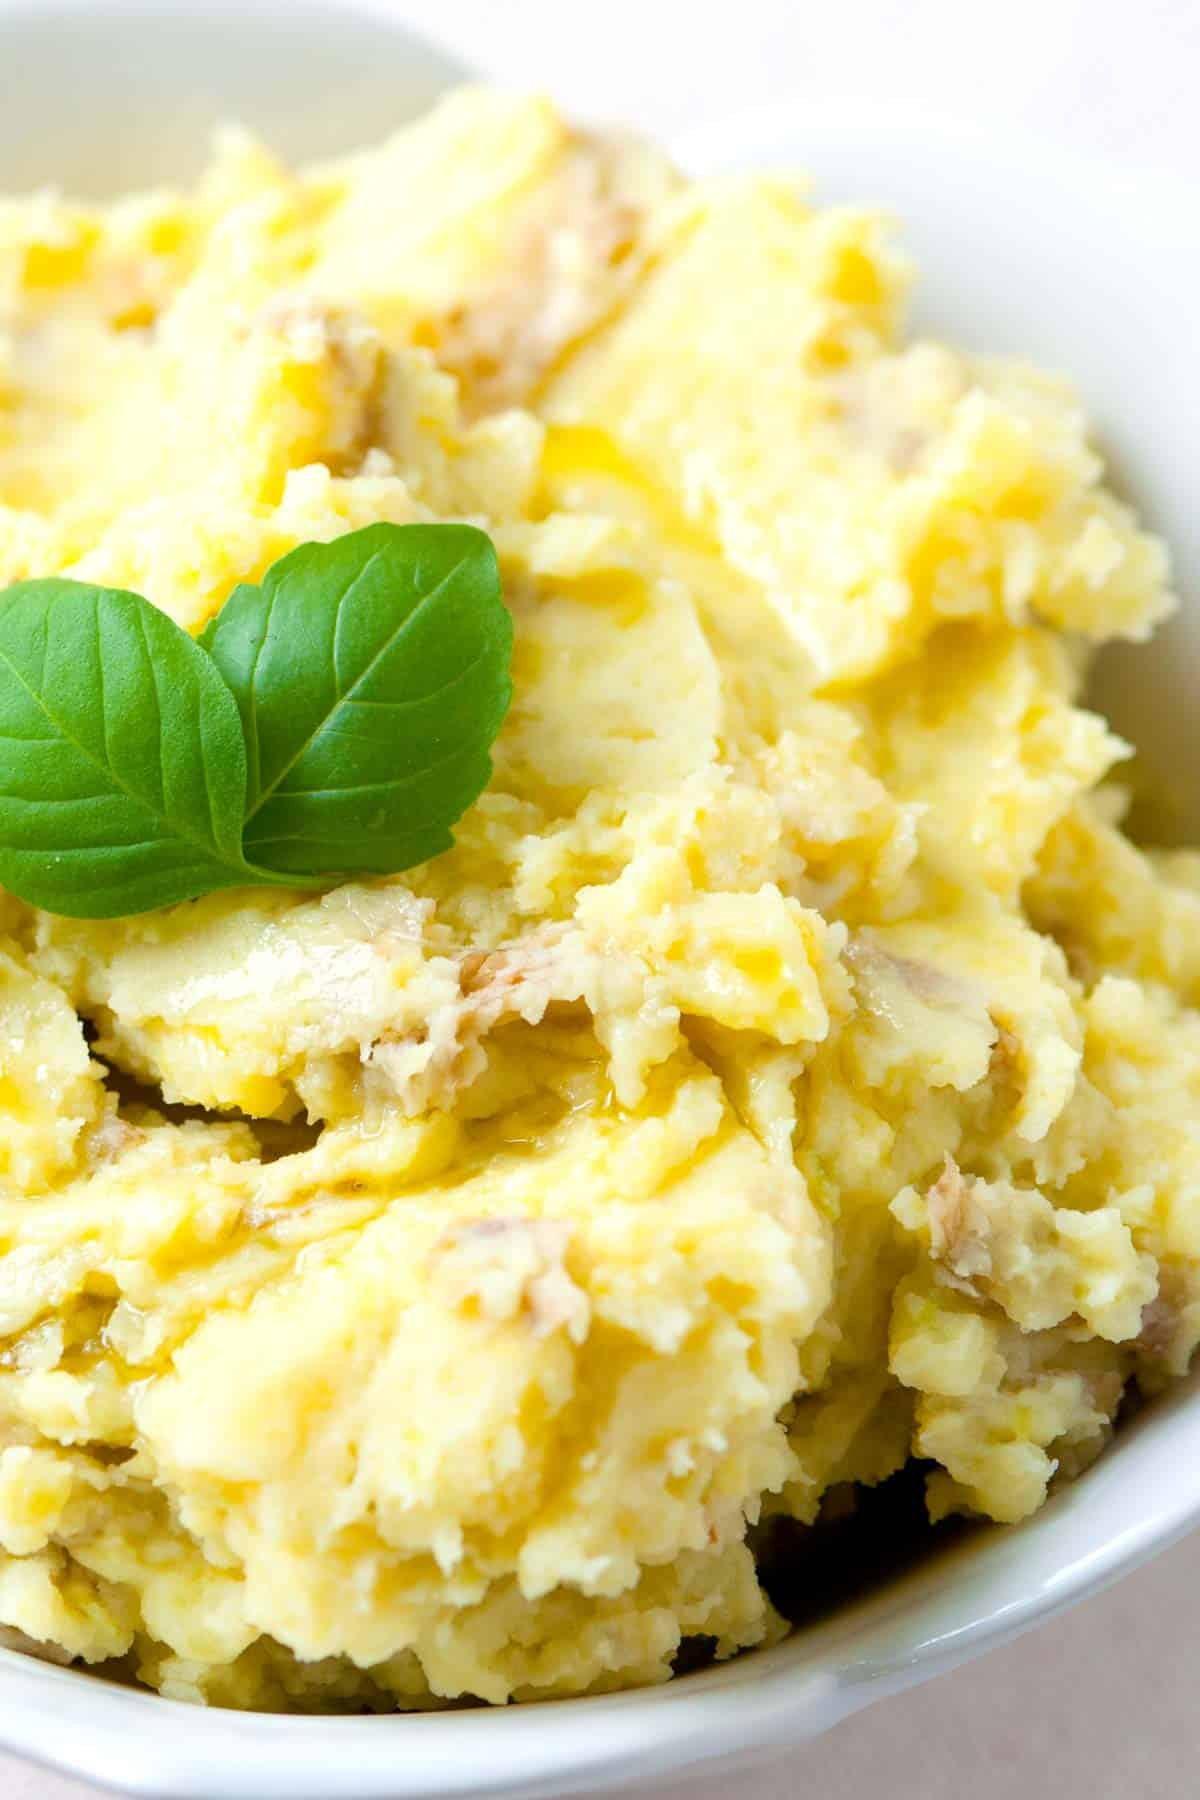 How to make vegan mashed potatoes with roasted garlic and olive oil